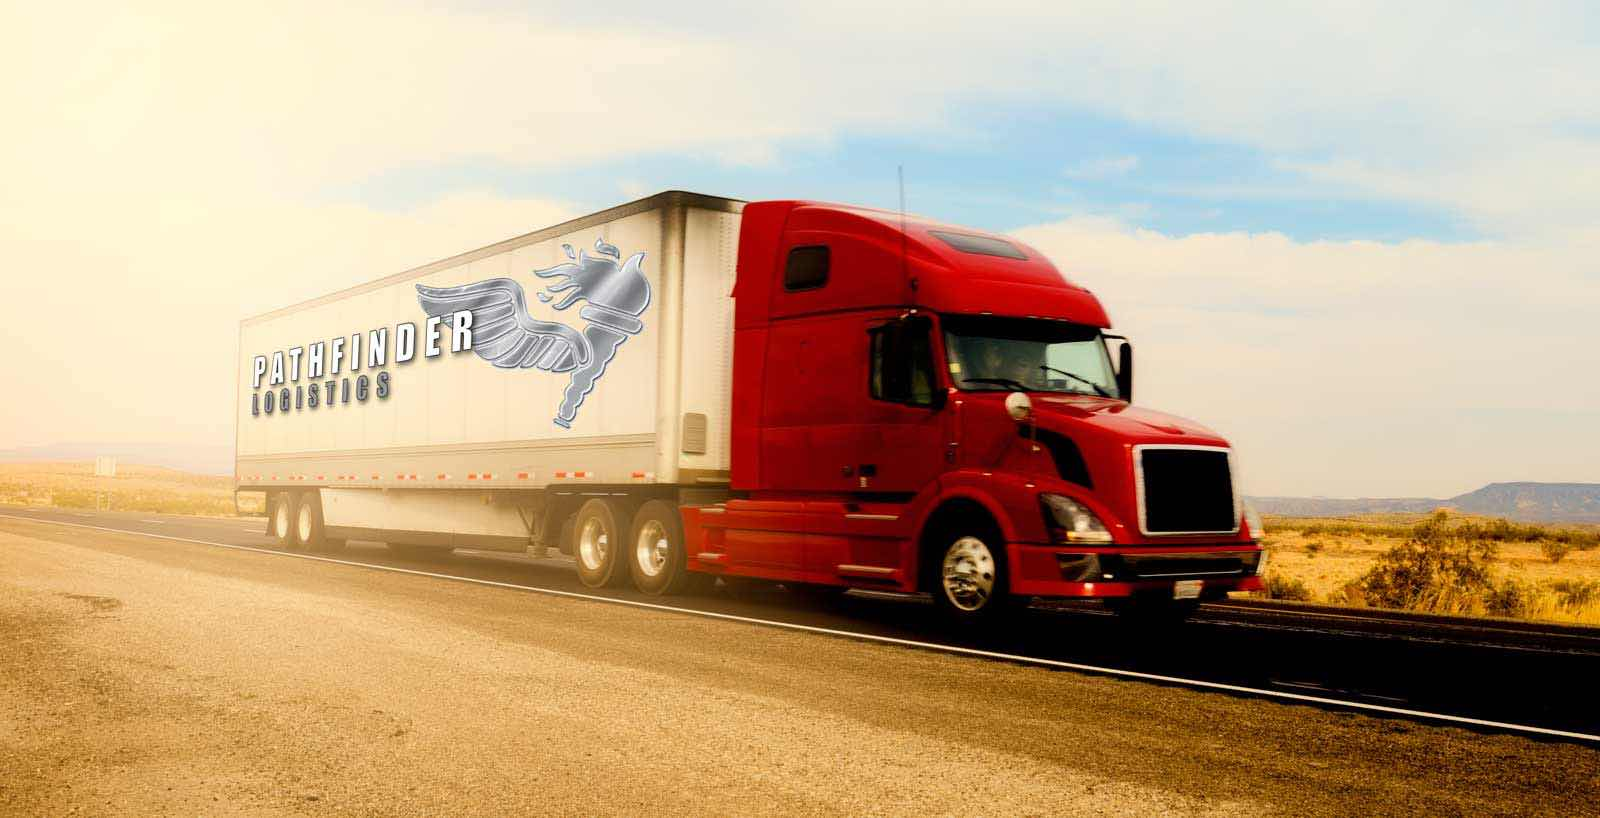 Photo of Pathfinder Logistics Truck Driving On Road